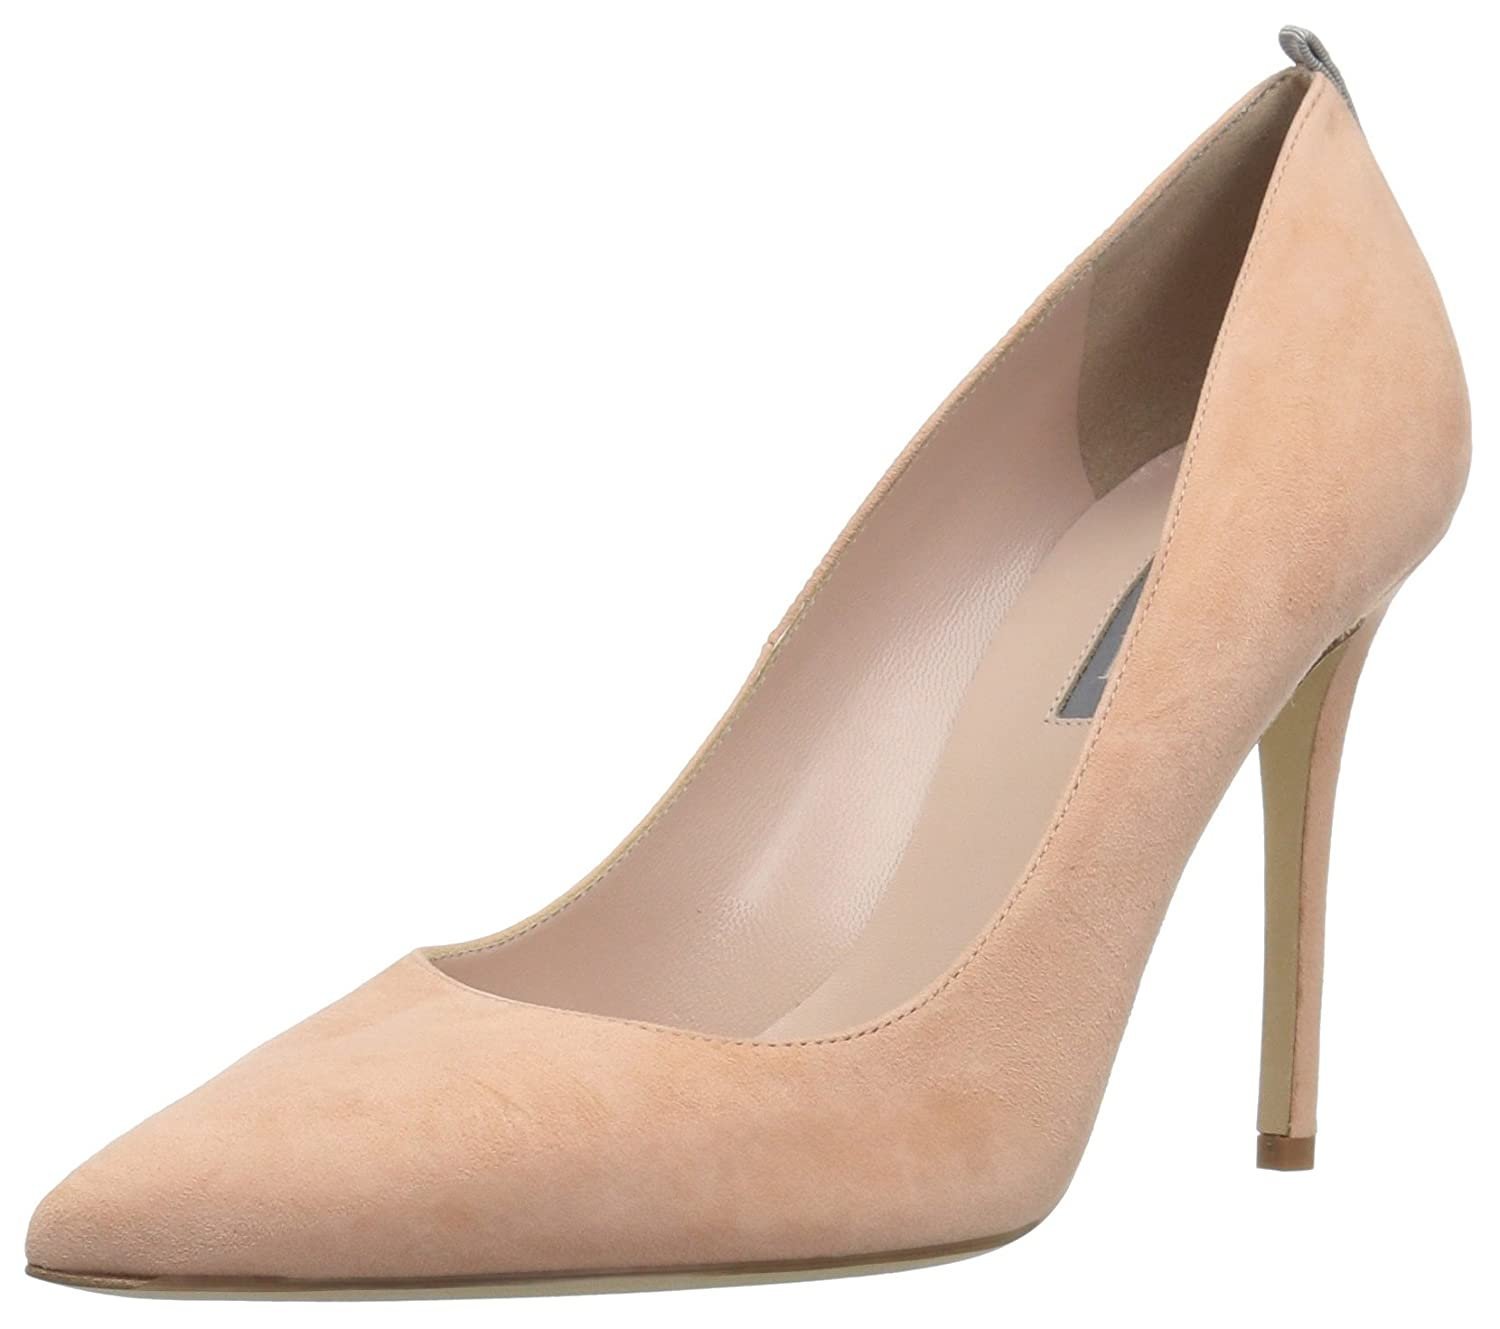 Signature Nude Suede SJP by Sarah Jessica Parker Women's Fawn